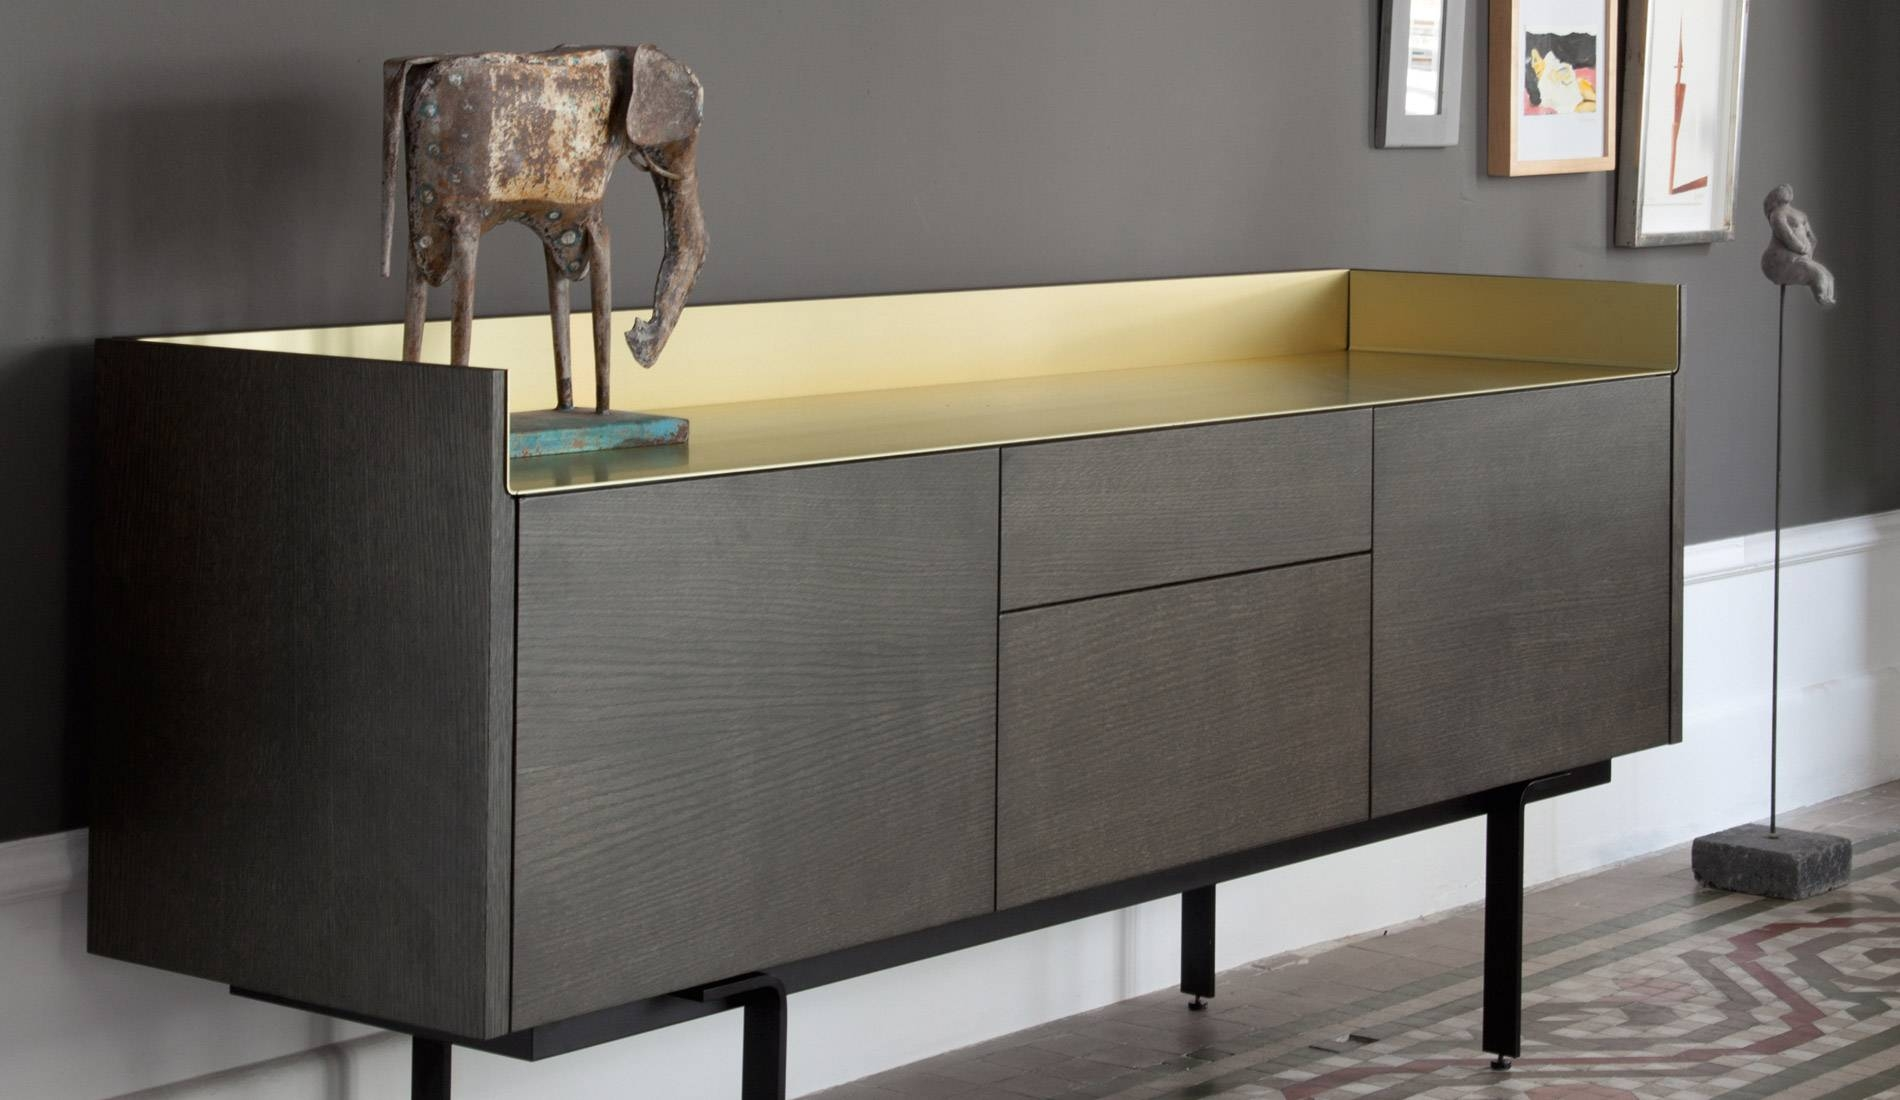 Amazing Xelo Light Grey Oak Sideboard Design Featuring Glass Store intended for Dark Grey Sideboards (Image 3 of 30)